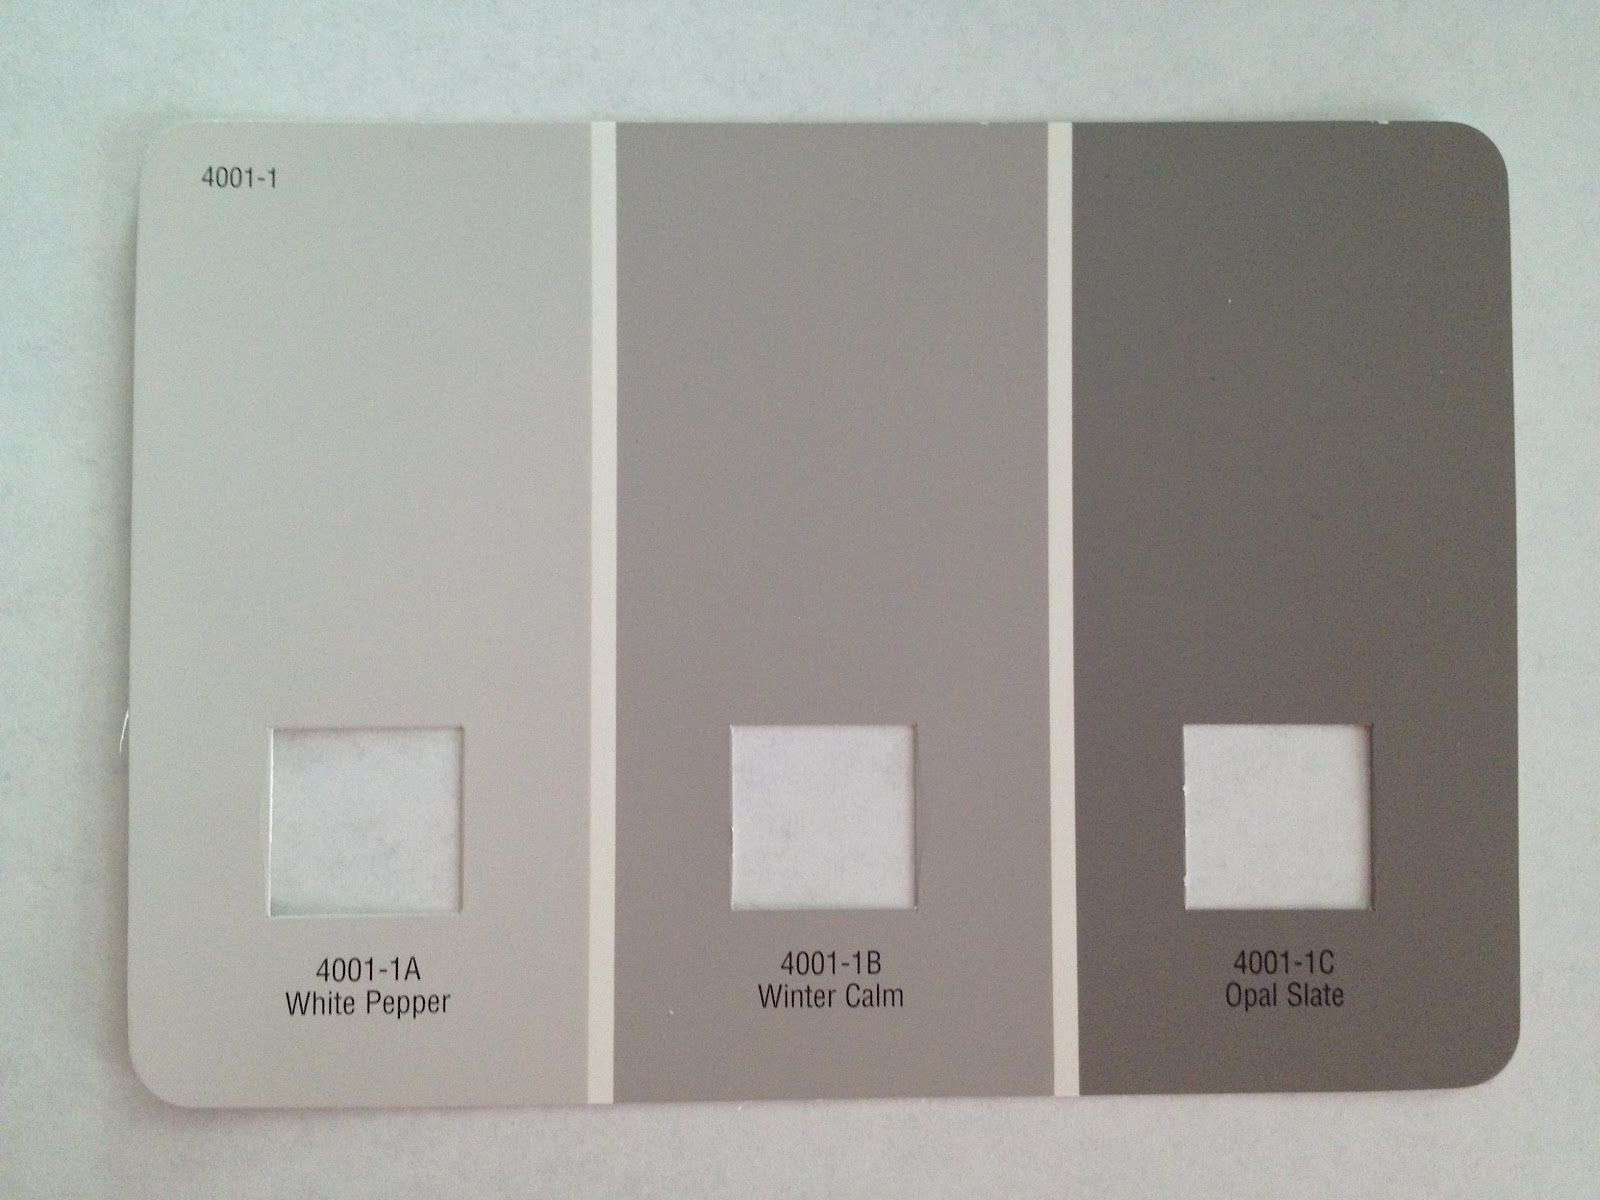 White pepper valspar walls myla my love pinterest for White paint swatches